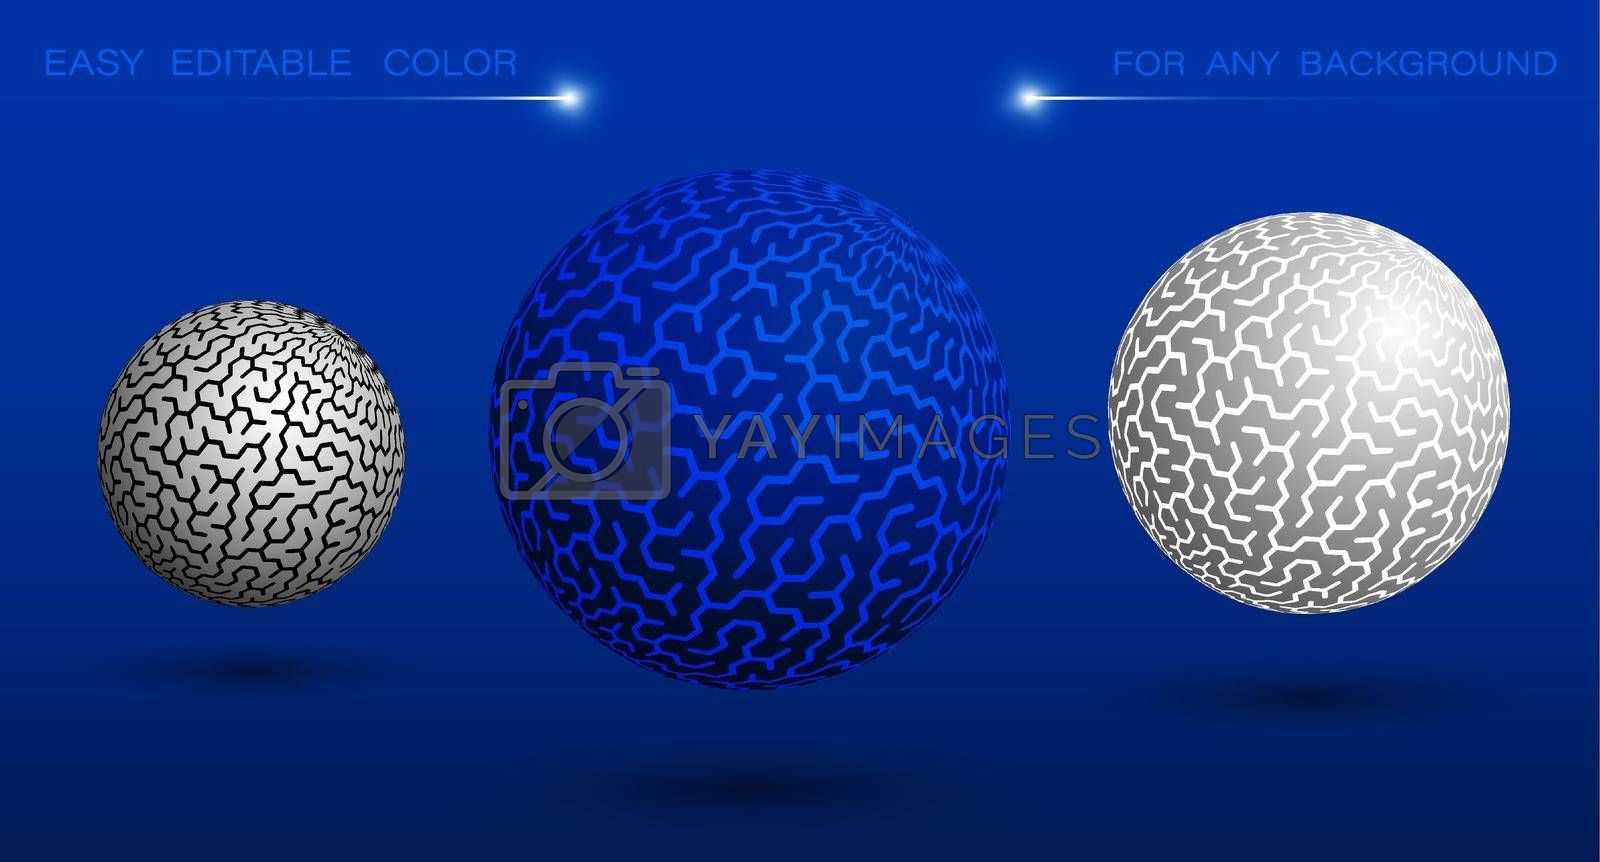 decorative sphere with hexagons and labyrinth ornament. Design element or ready made tech banner decoration. Easy to edit ornament and background color. Vector